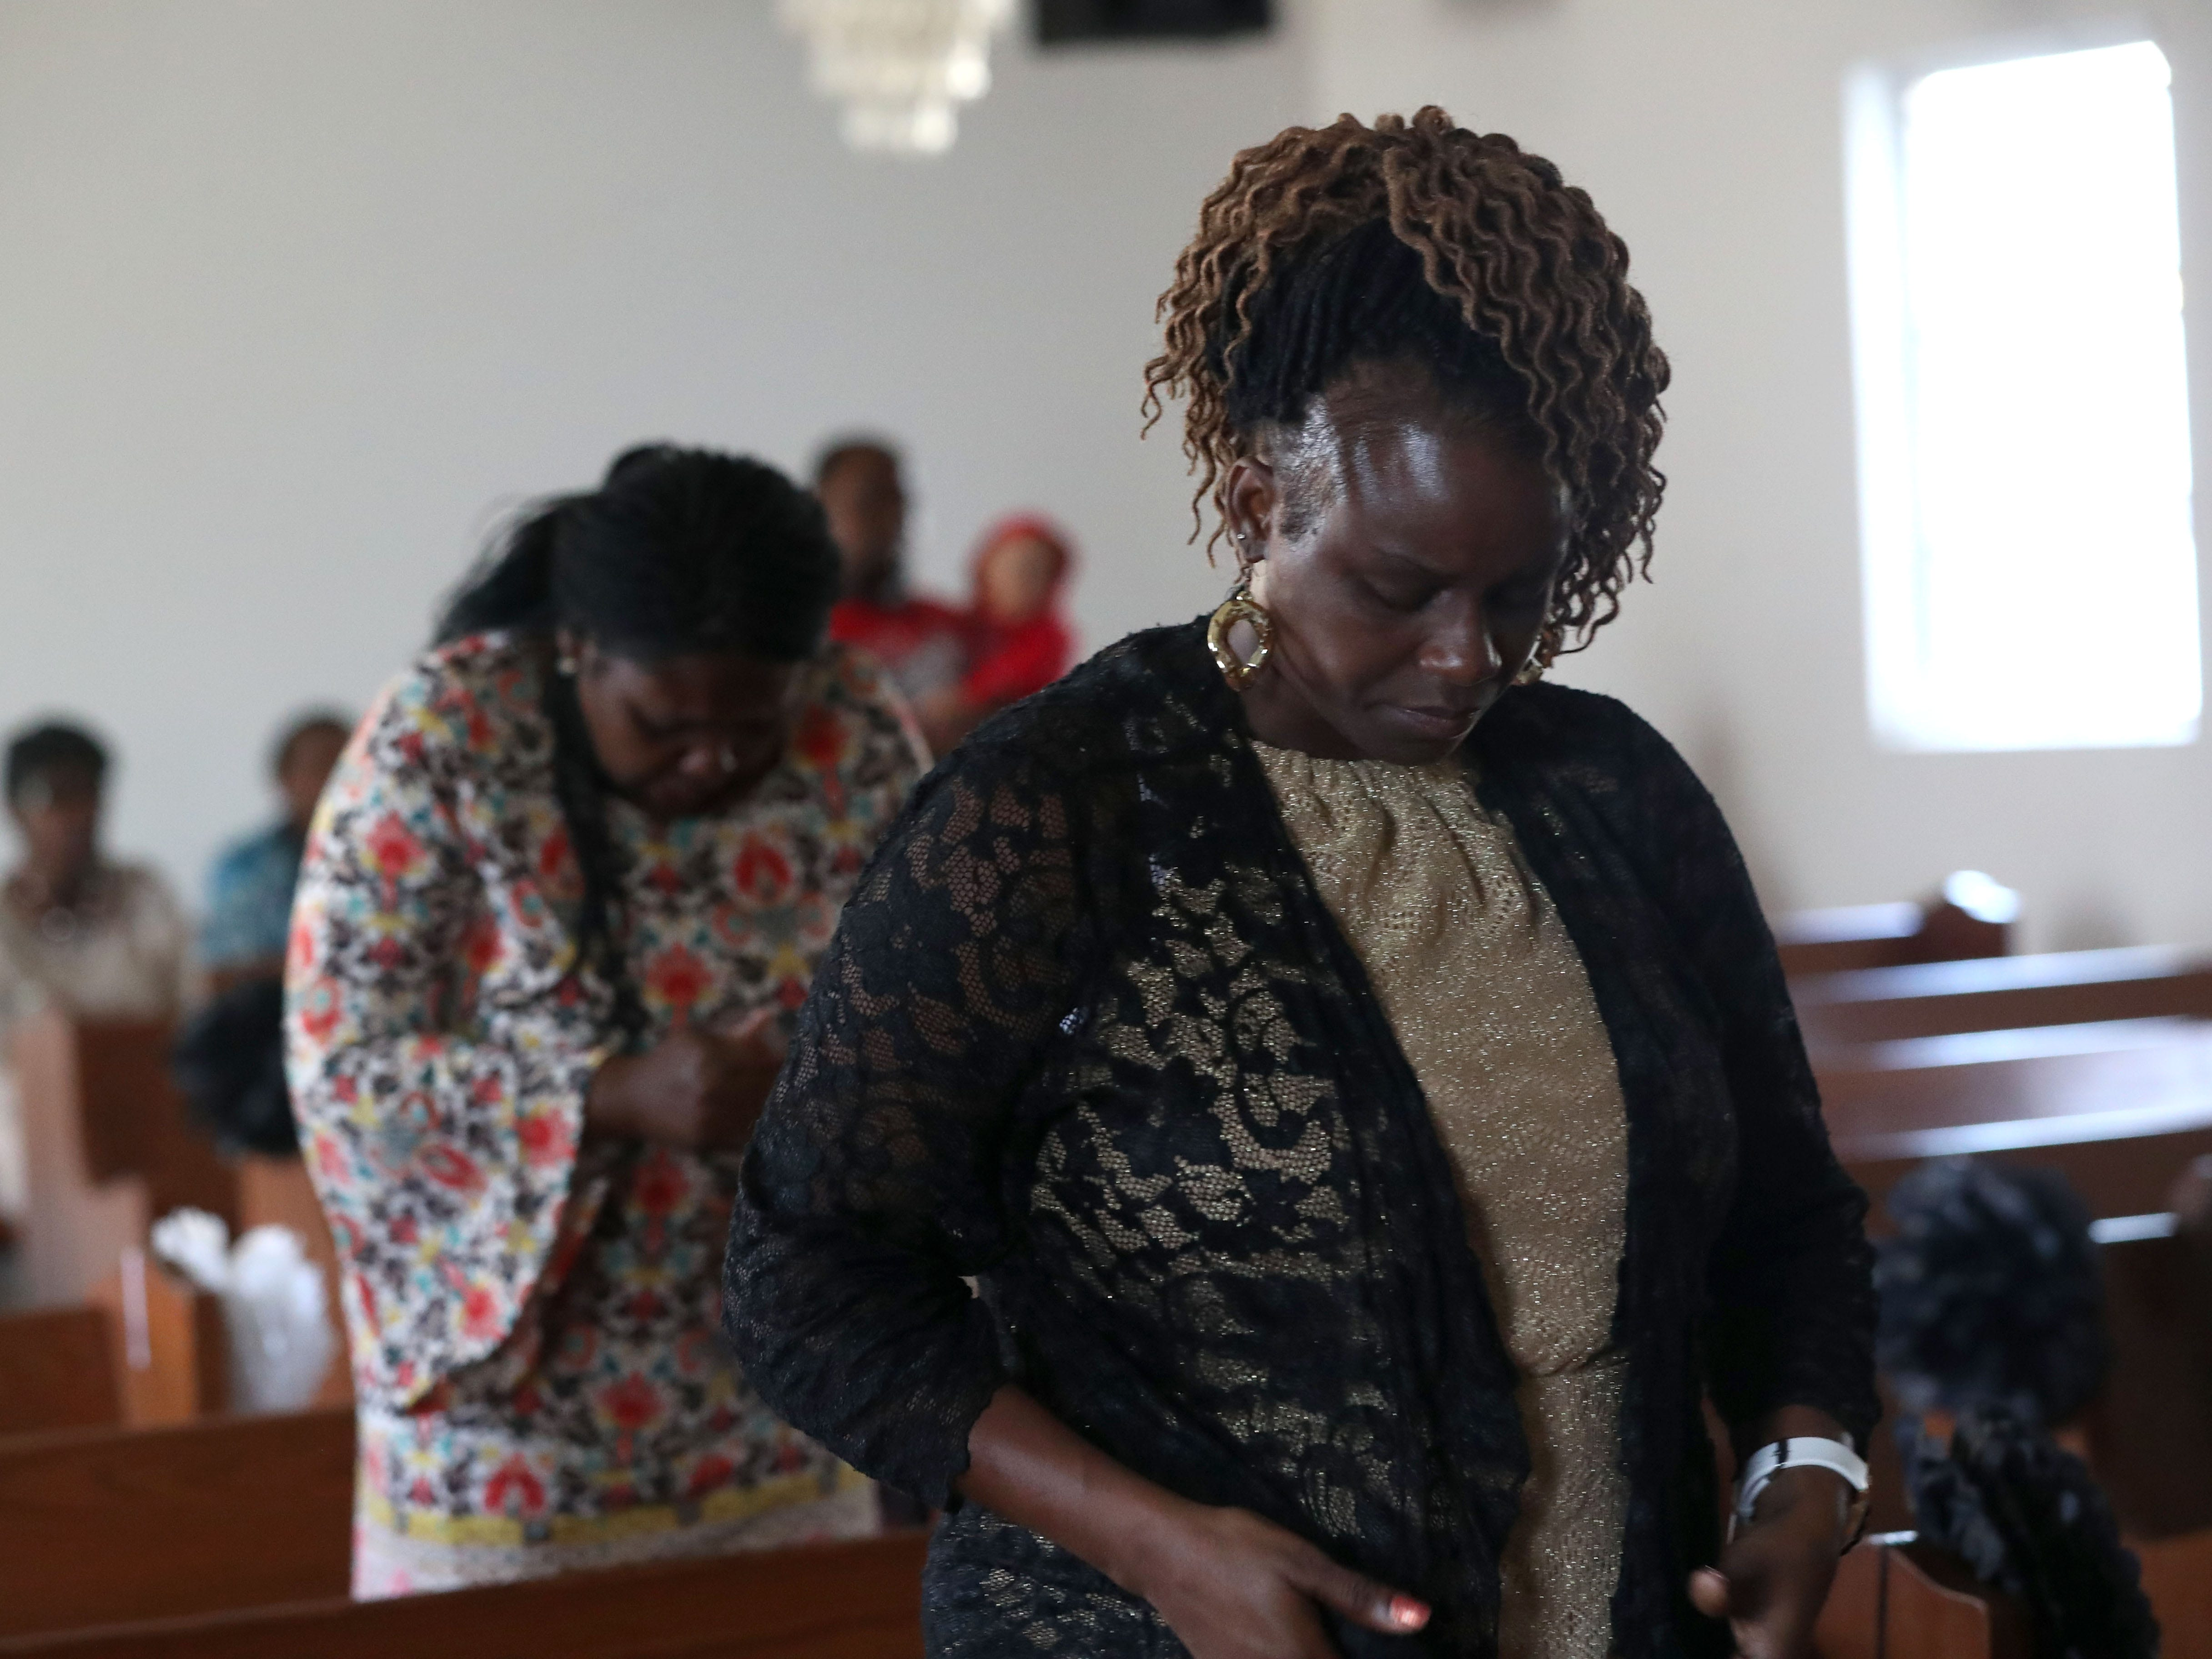 Members of the Dream, Vision, and Destiny (DVD) Ministry in Gretna, Fla., take a moment to pray at Sunday service on Oct. 14, 2018, after Hurricane Michael hits the Florida panhandle.